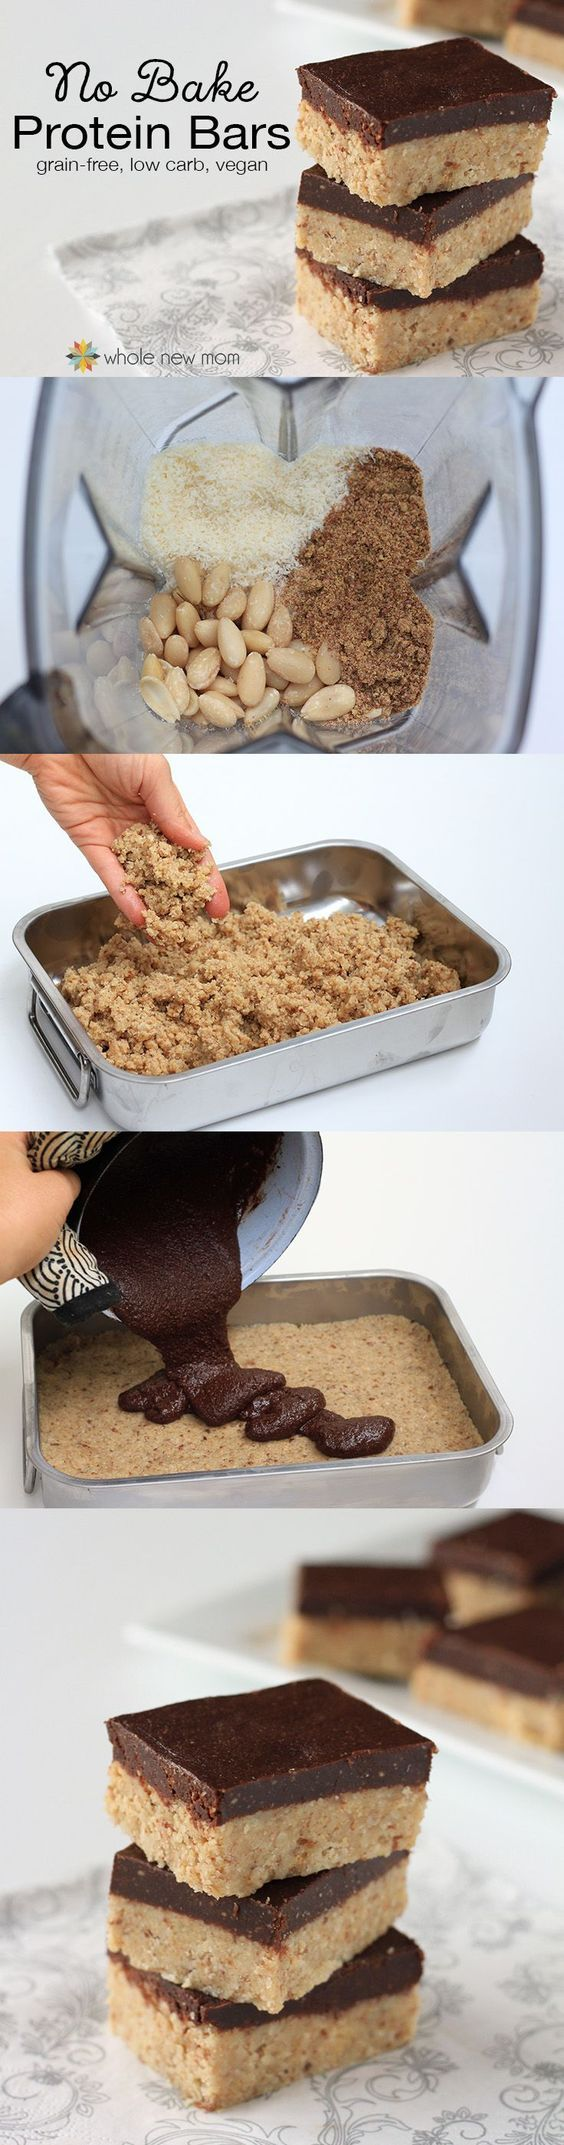 Grain-Free No-Bake Homemade Protein Bars